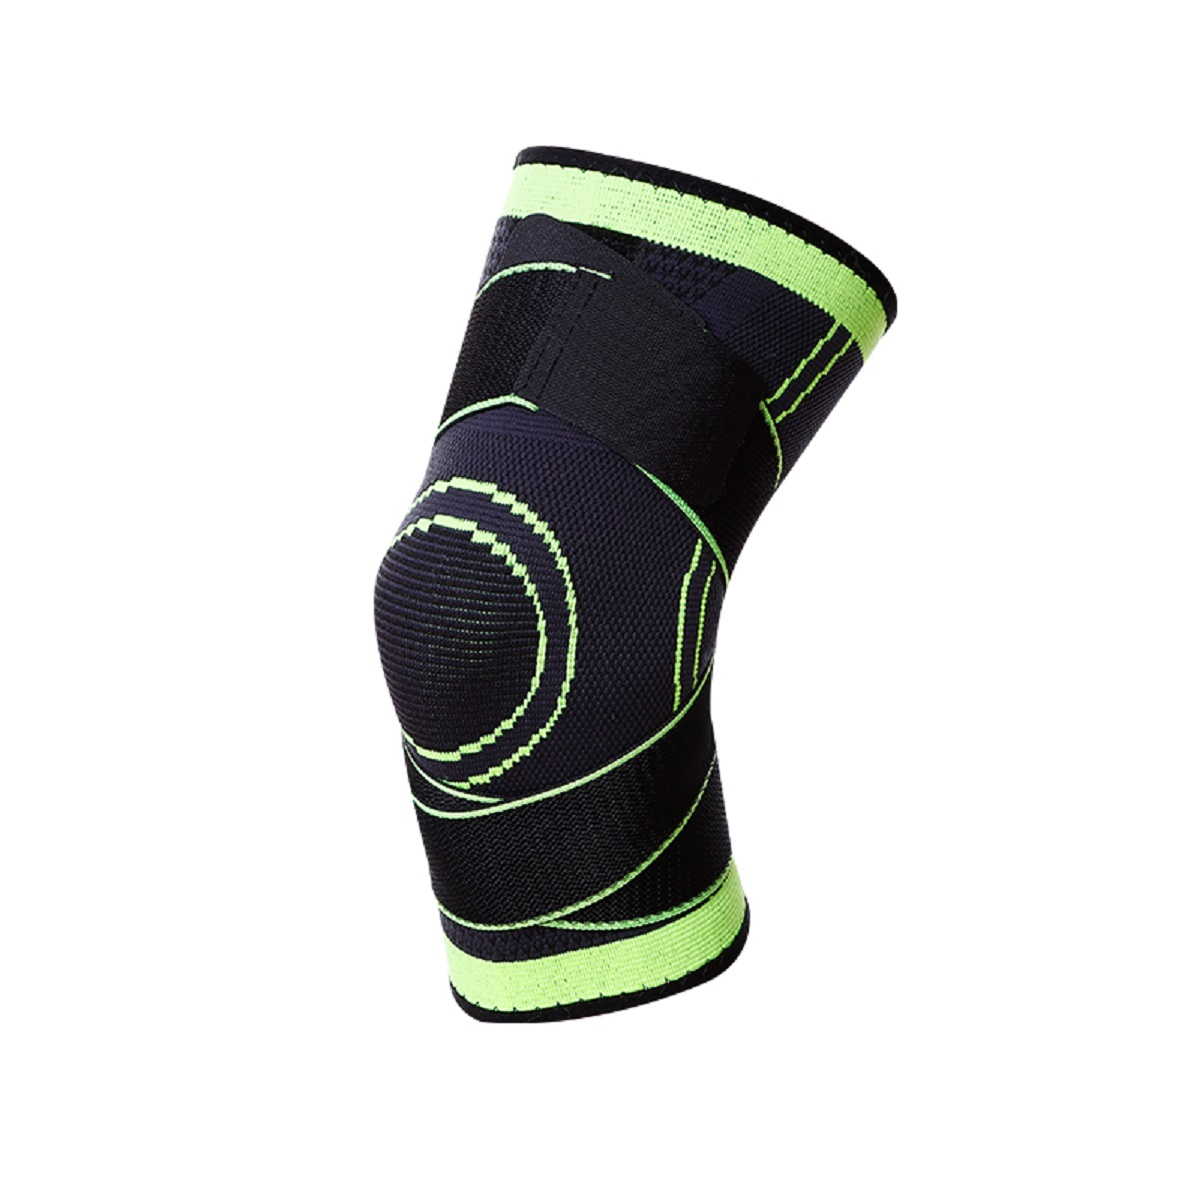 USA-3D-Weaving-Knee-Brace-Breathable-Sleeve-Support-for-Running-Jogging-Sports miniature 14